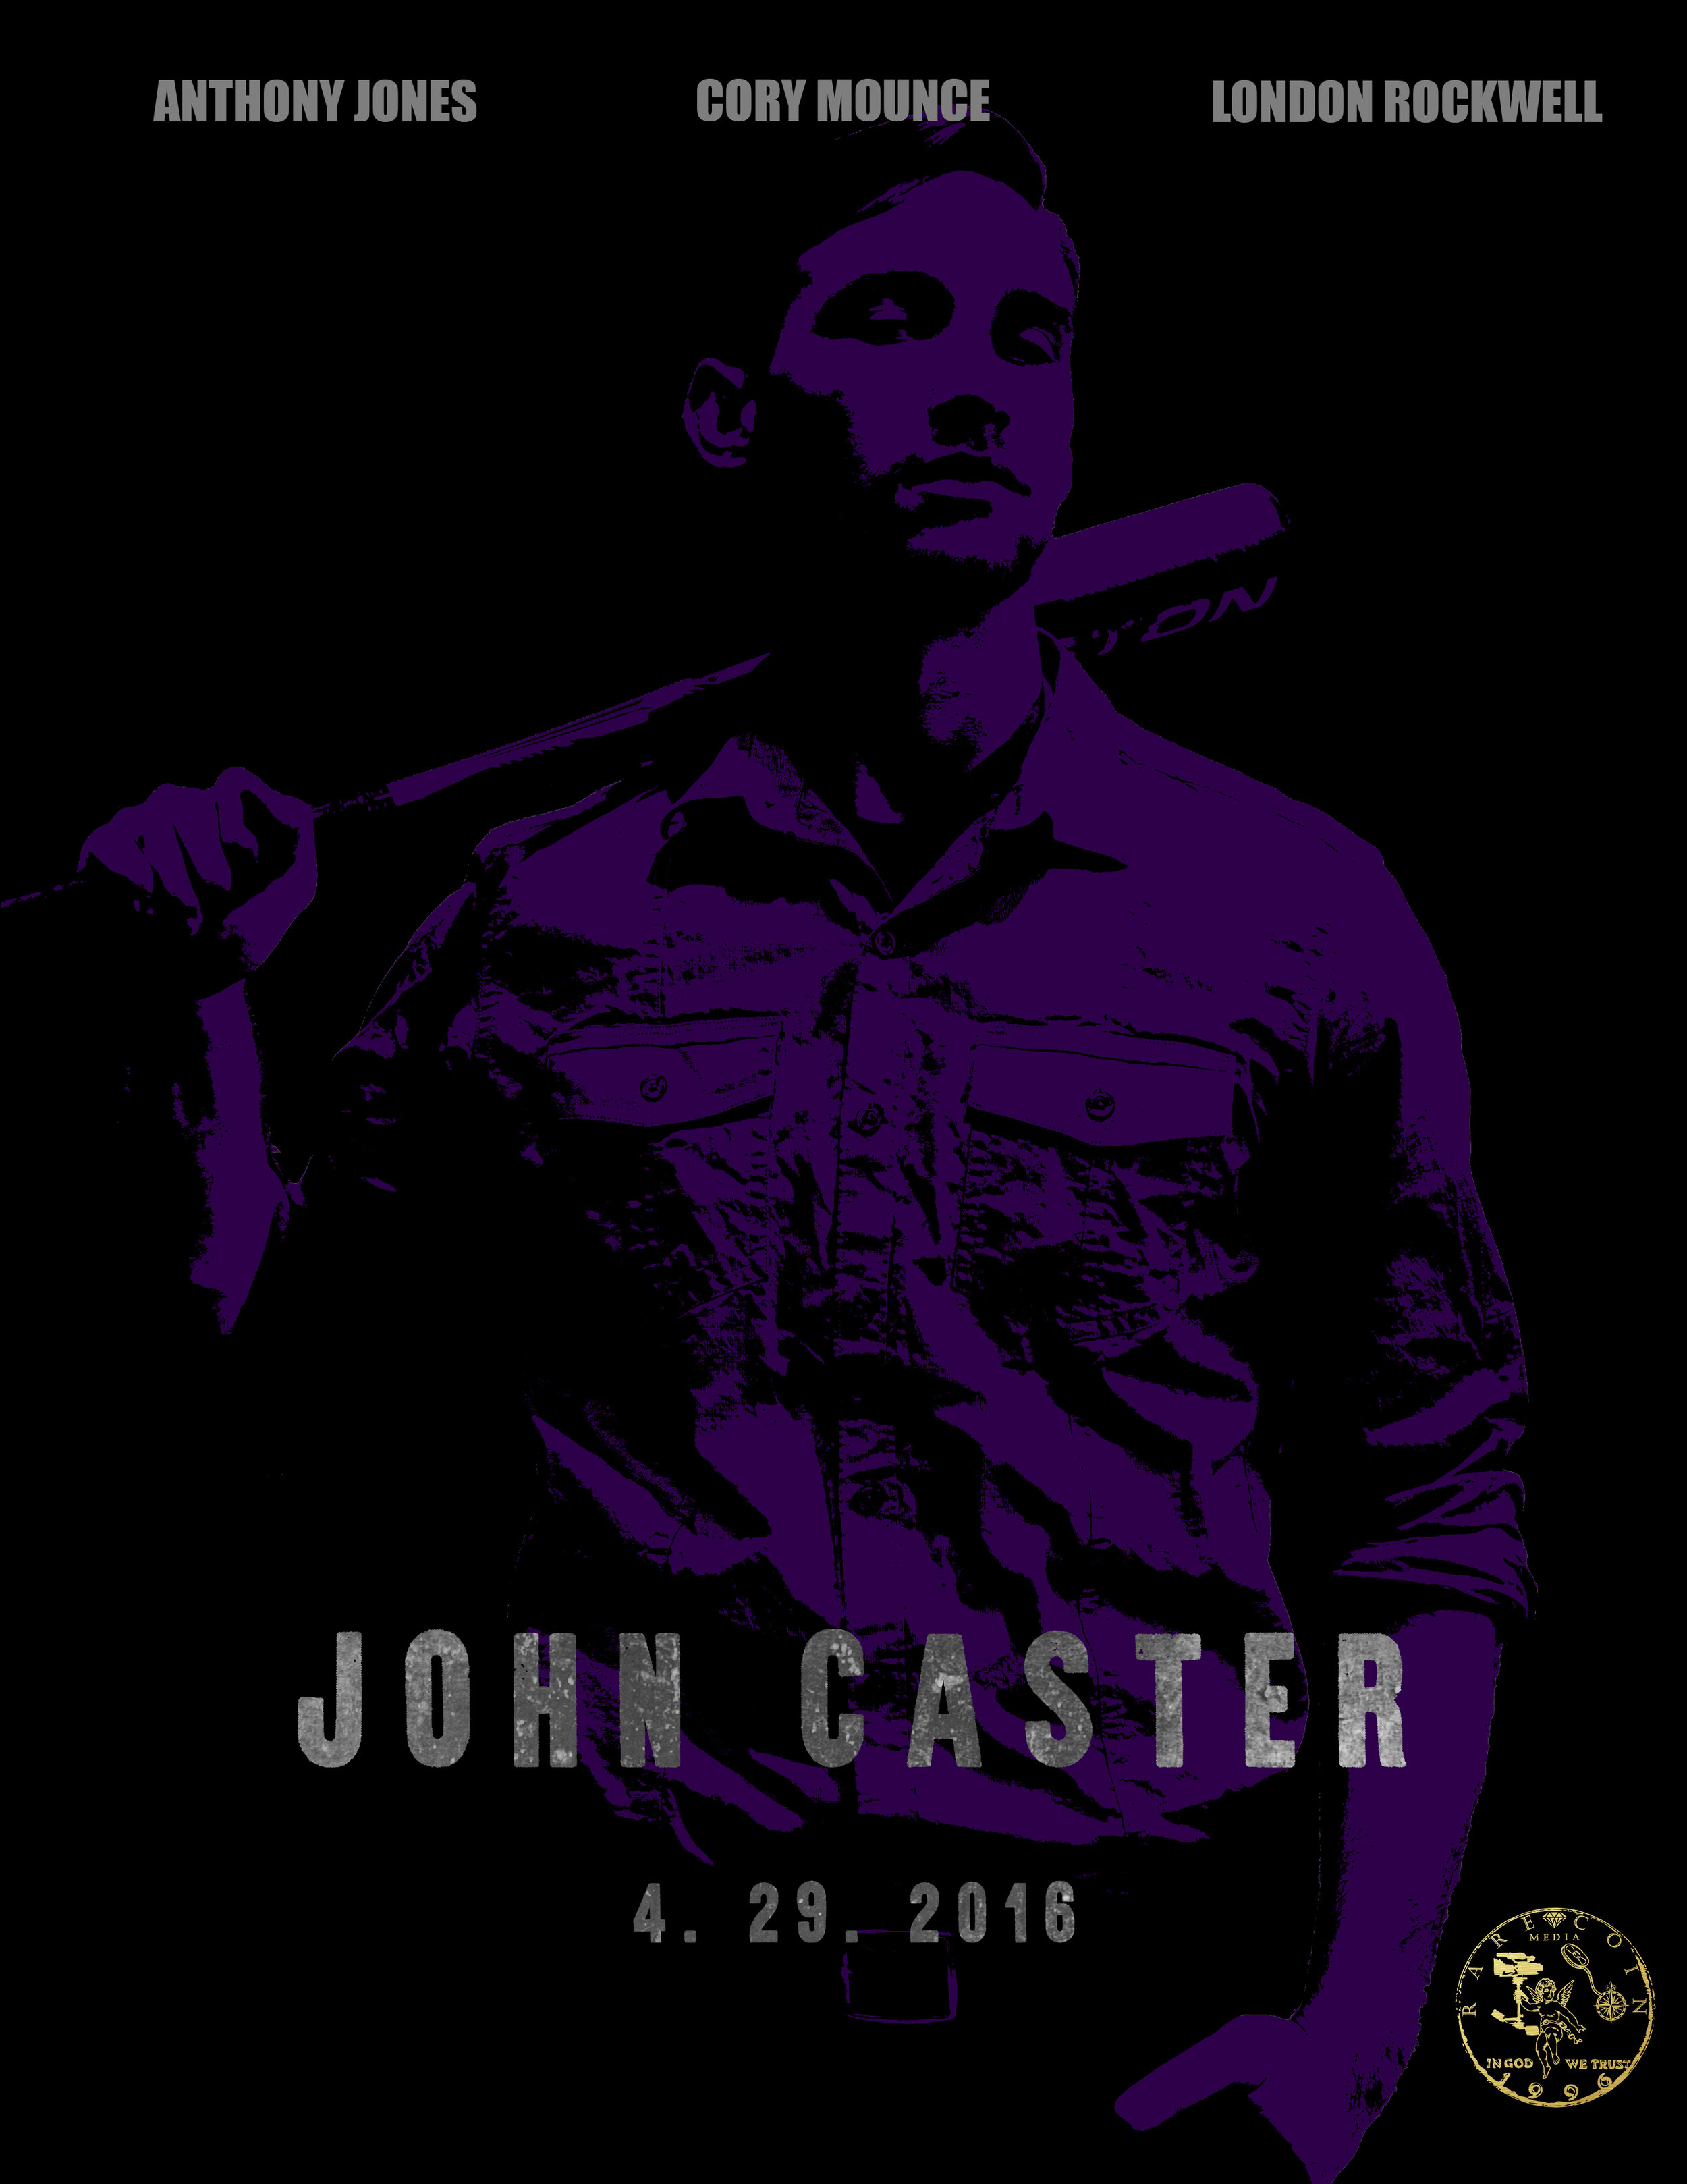 John Caster - JOHN CASTER [2016] (Feature Film) - Writer, Director, ProducerThe first project completed by Rare Coin Media, John Caster is about three private investigators who solve a crime and in doing so get caught in the middle of a drug lord and a police commissioner's long war for the streets. With his smarts and his wit, John has to overcome the odds and work with his team to find out who he should trust and who he should bring in.